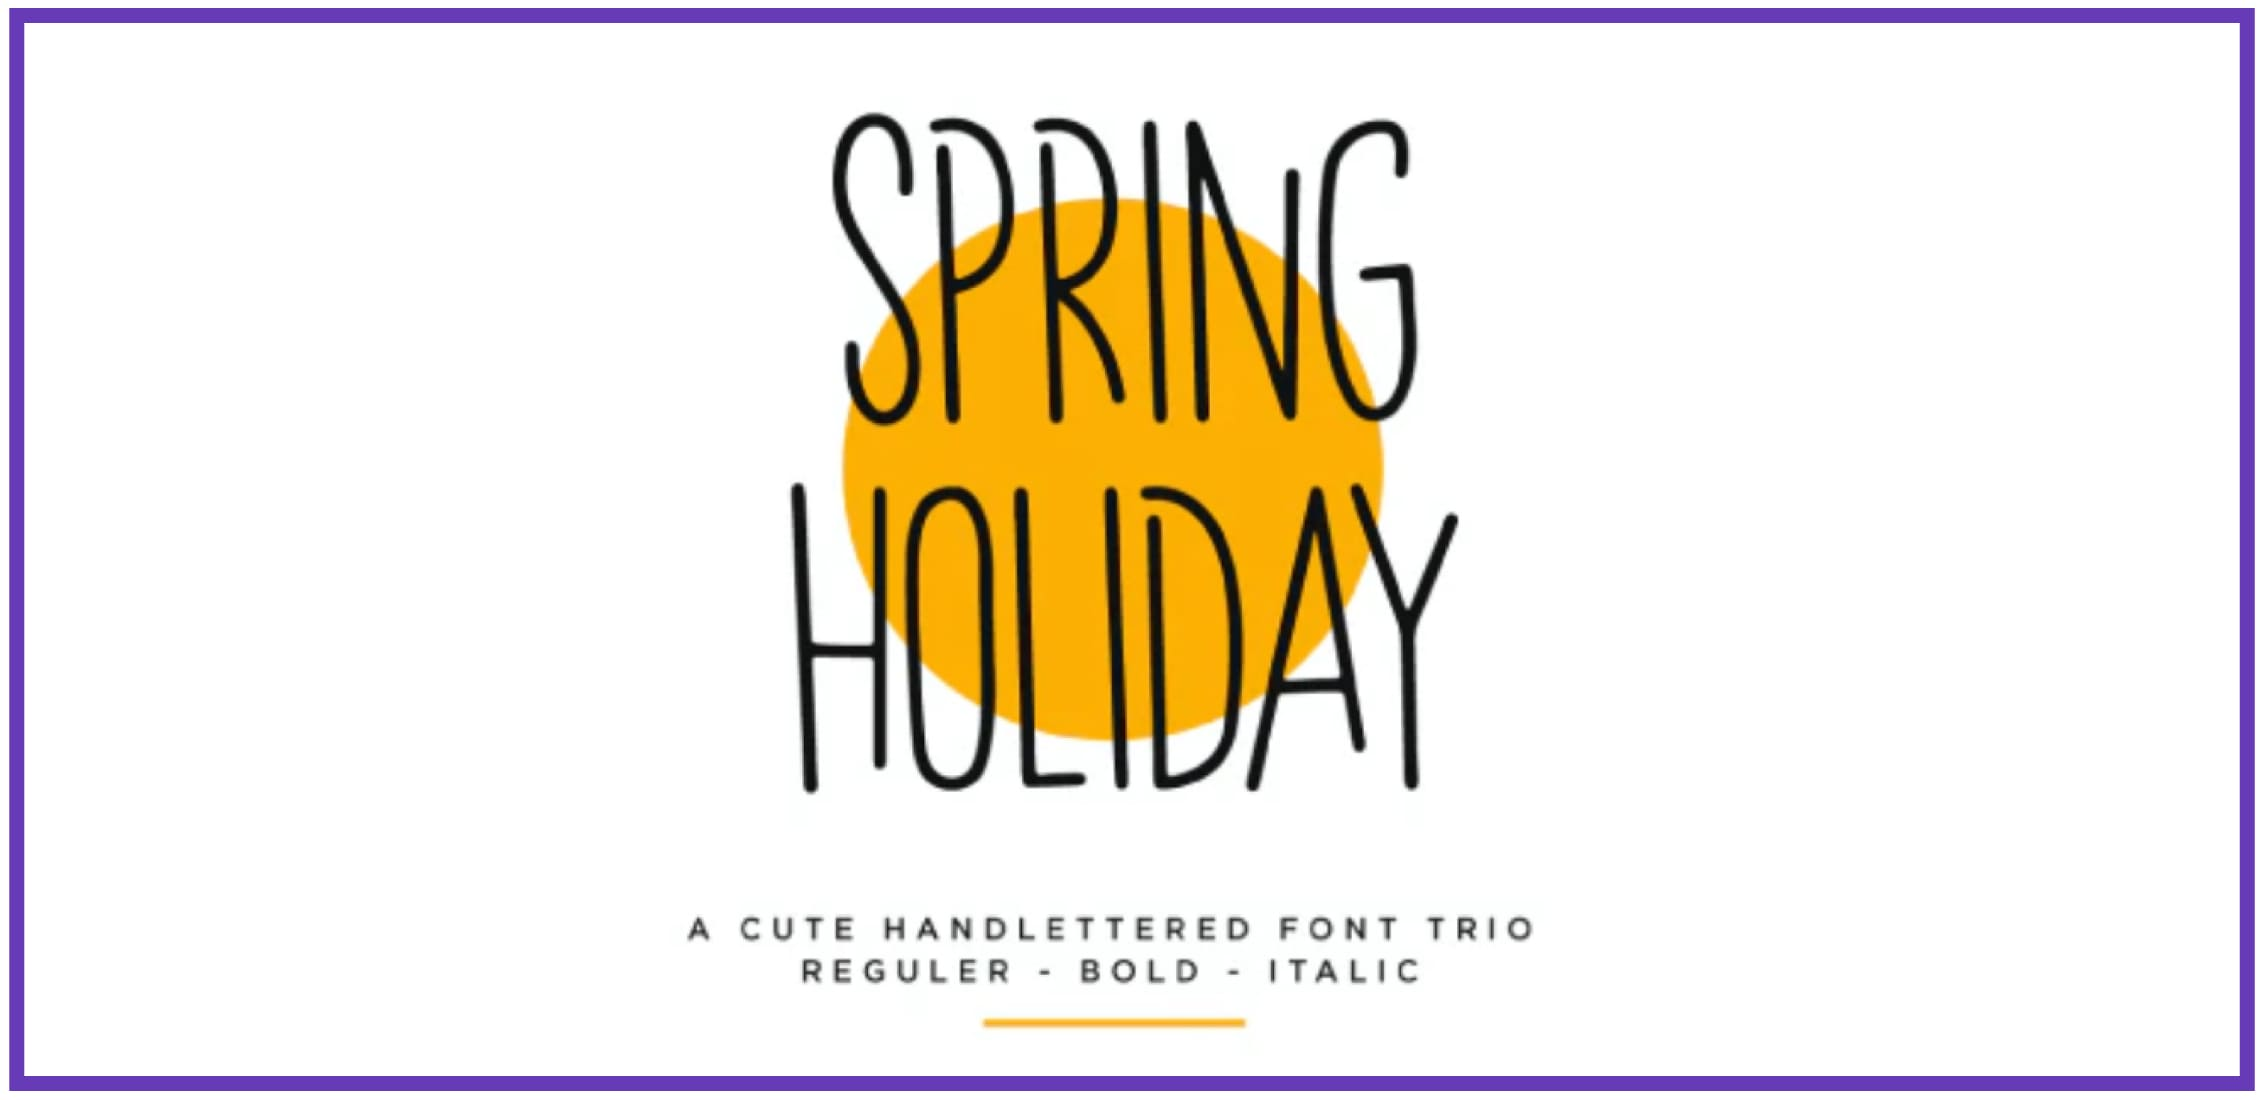 Intuitive Spring Holiday. Masculine Font.